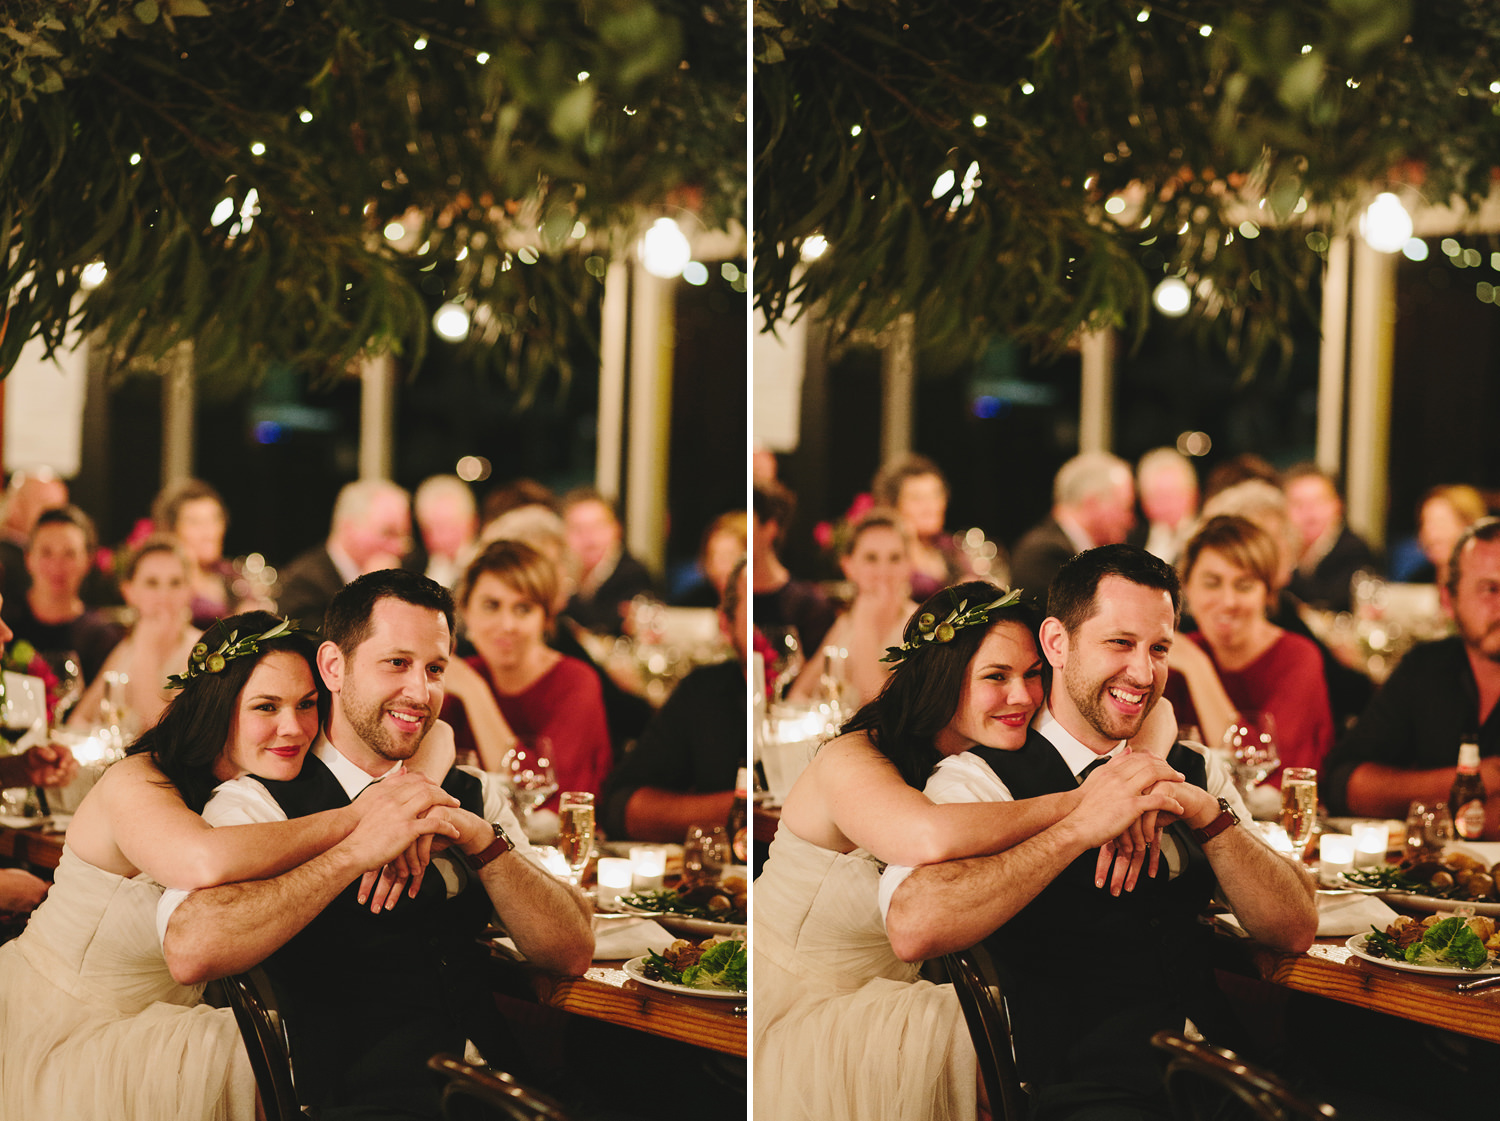 Melbourne_Winery_Wedding_Chris_Merrily161.JPG